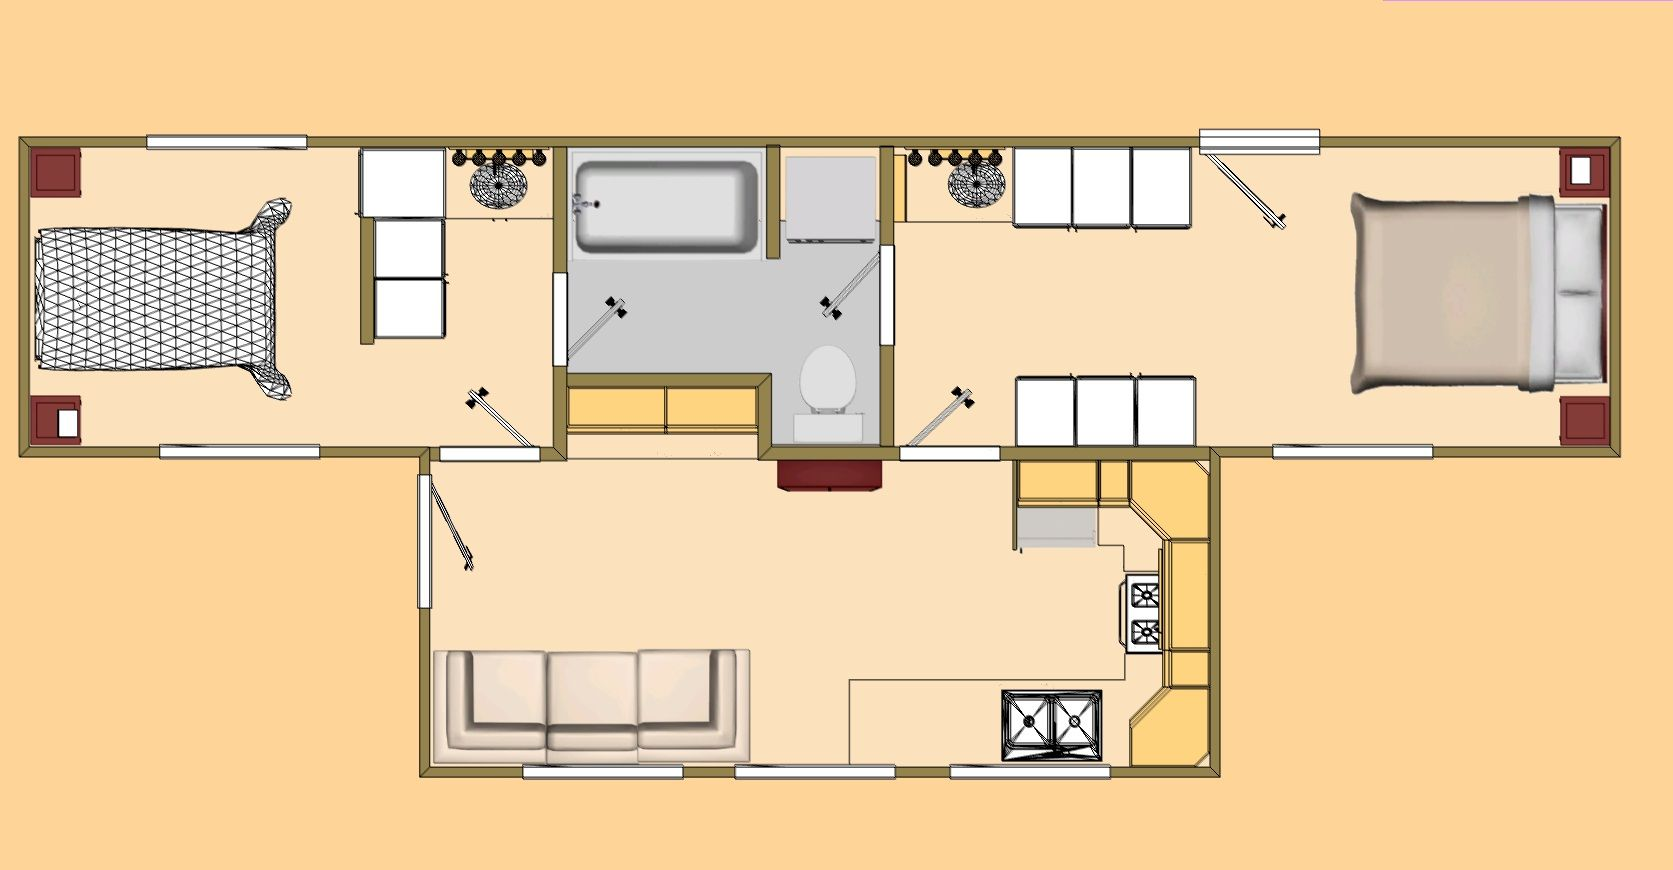 container home floor plans com 480 sq ft shipping container floor - Sea Container Home Designs